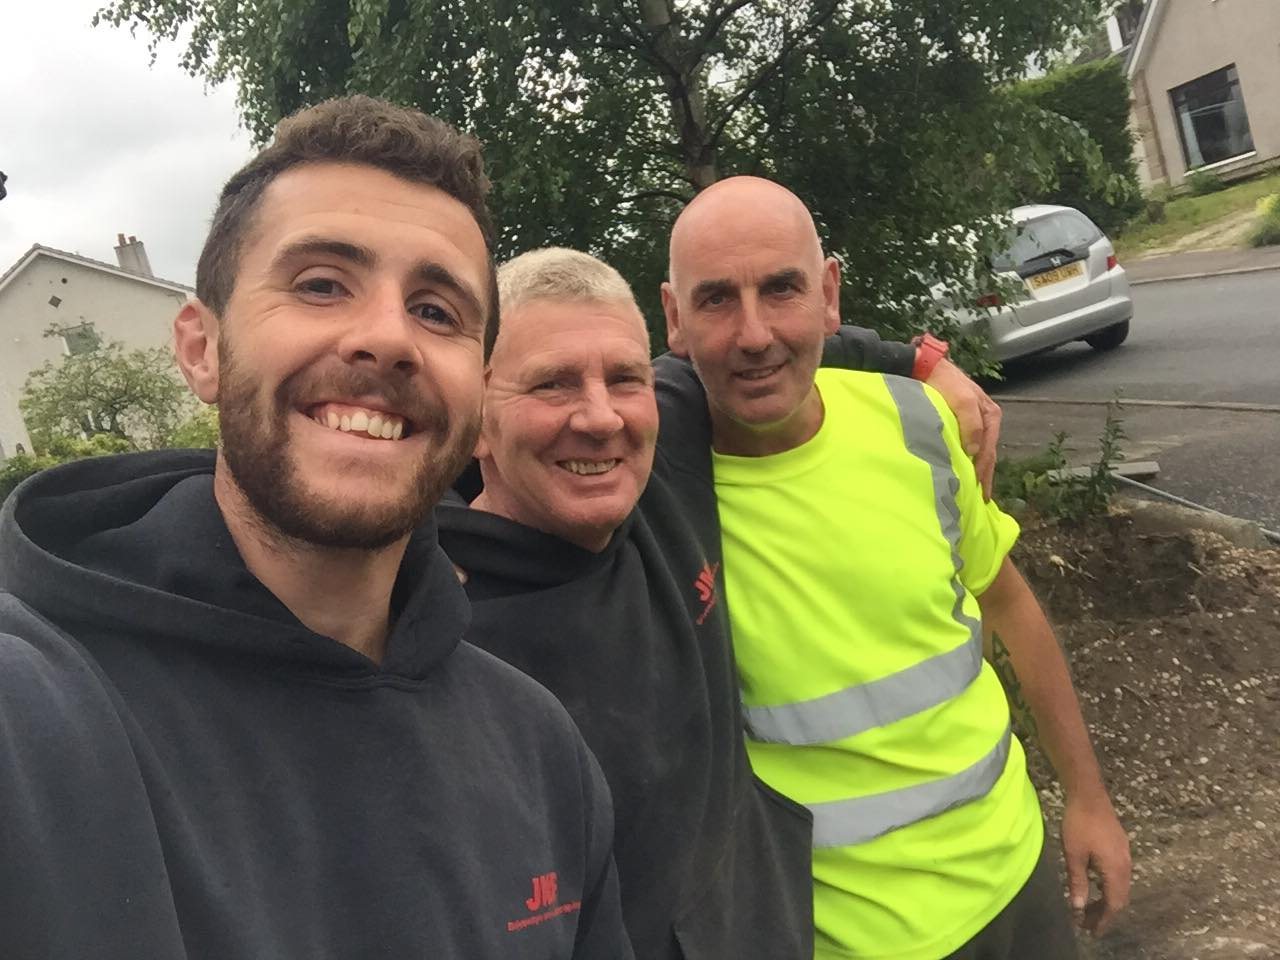 😂😂 #mawselfie from today with the bold Antony from bedrock 😂😂 — with Mark Odonoghue and Fintan O'Donoghue.